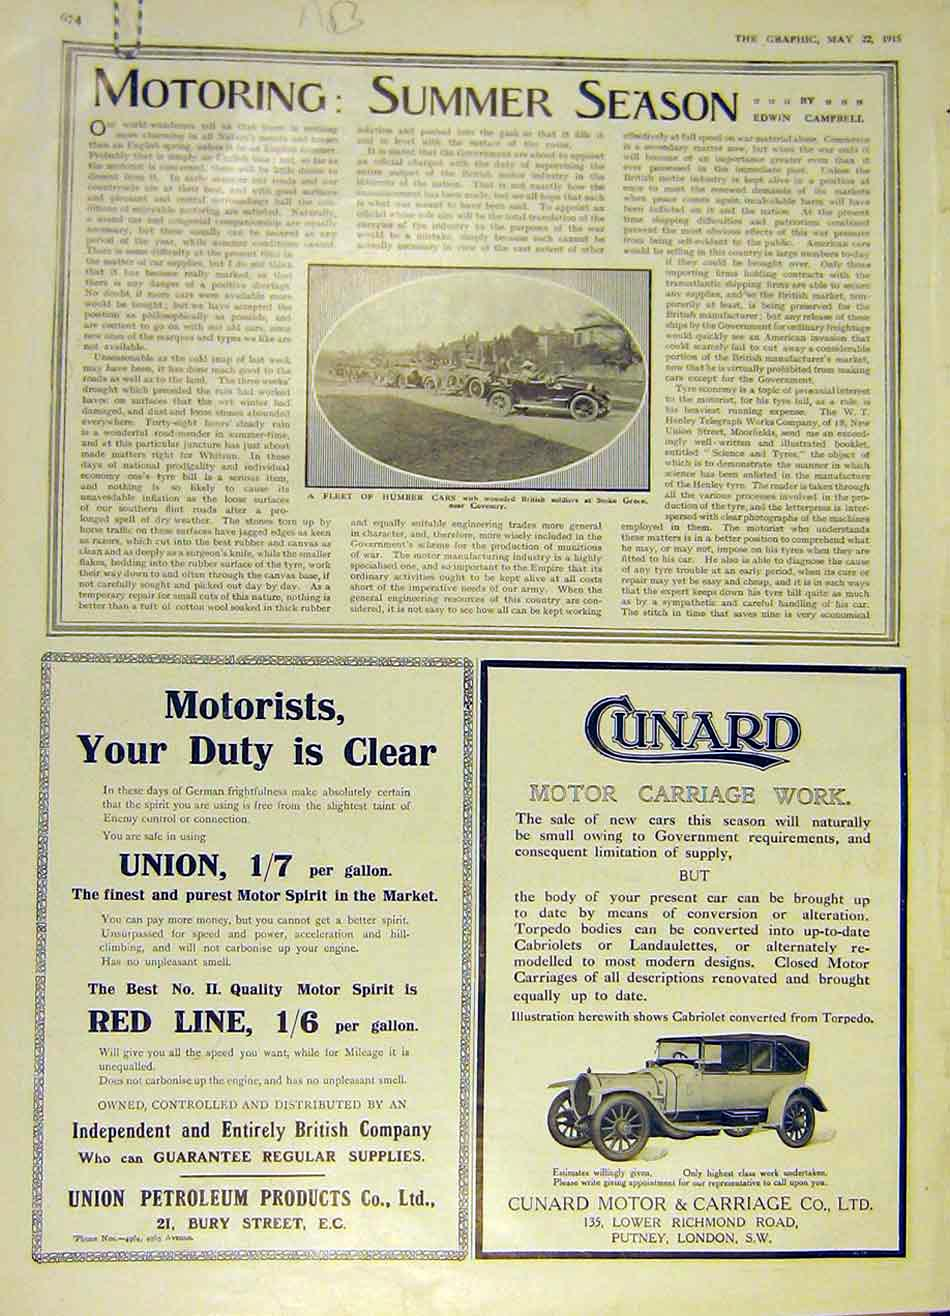 Print Humber Cars Coventry Napier Wolseley Daimler 1915 74Addd0 Old Original